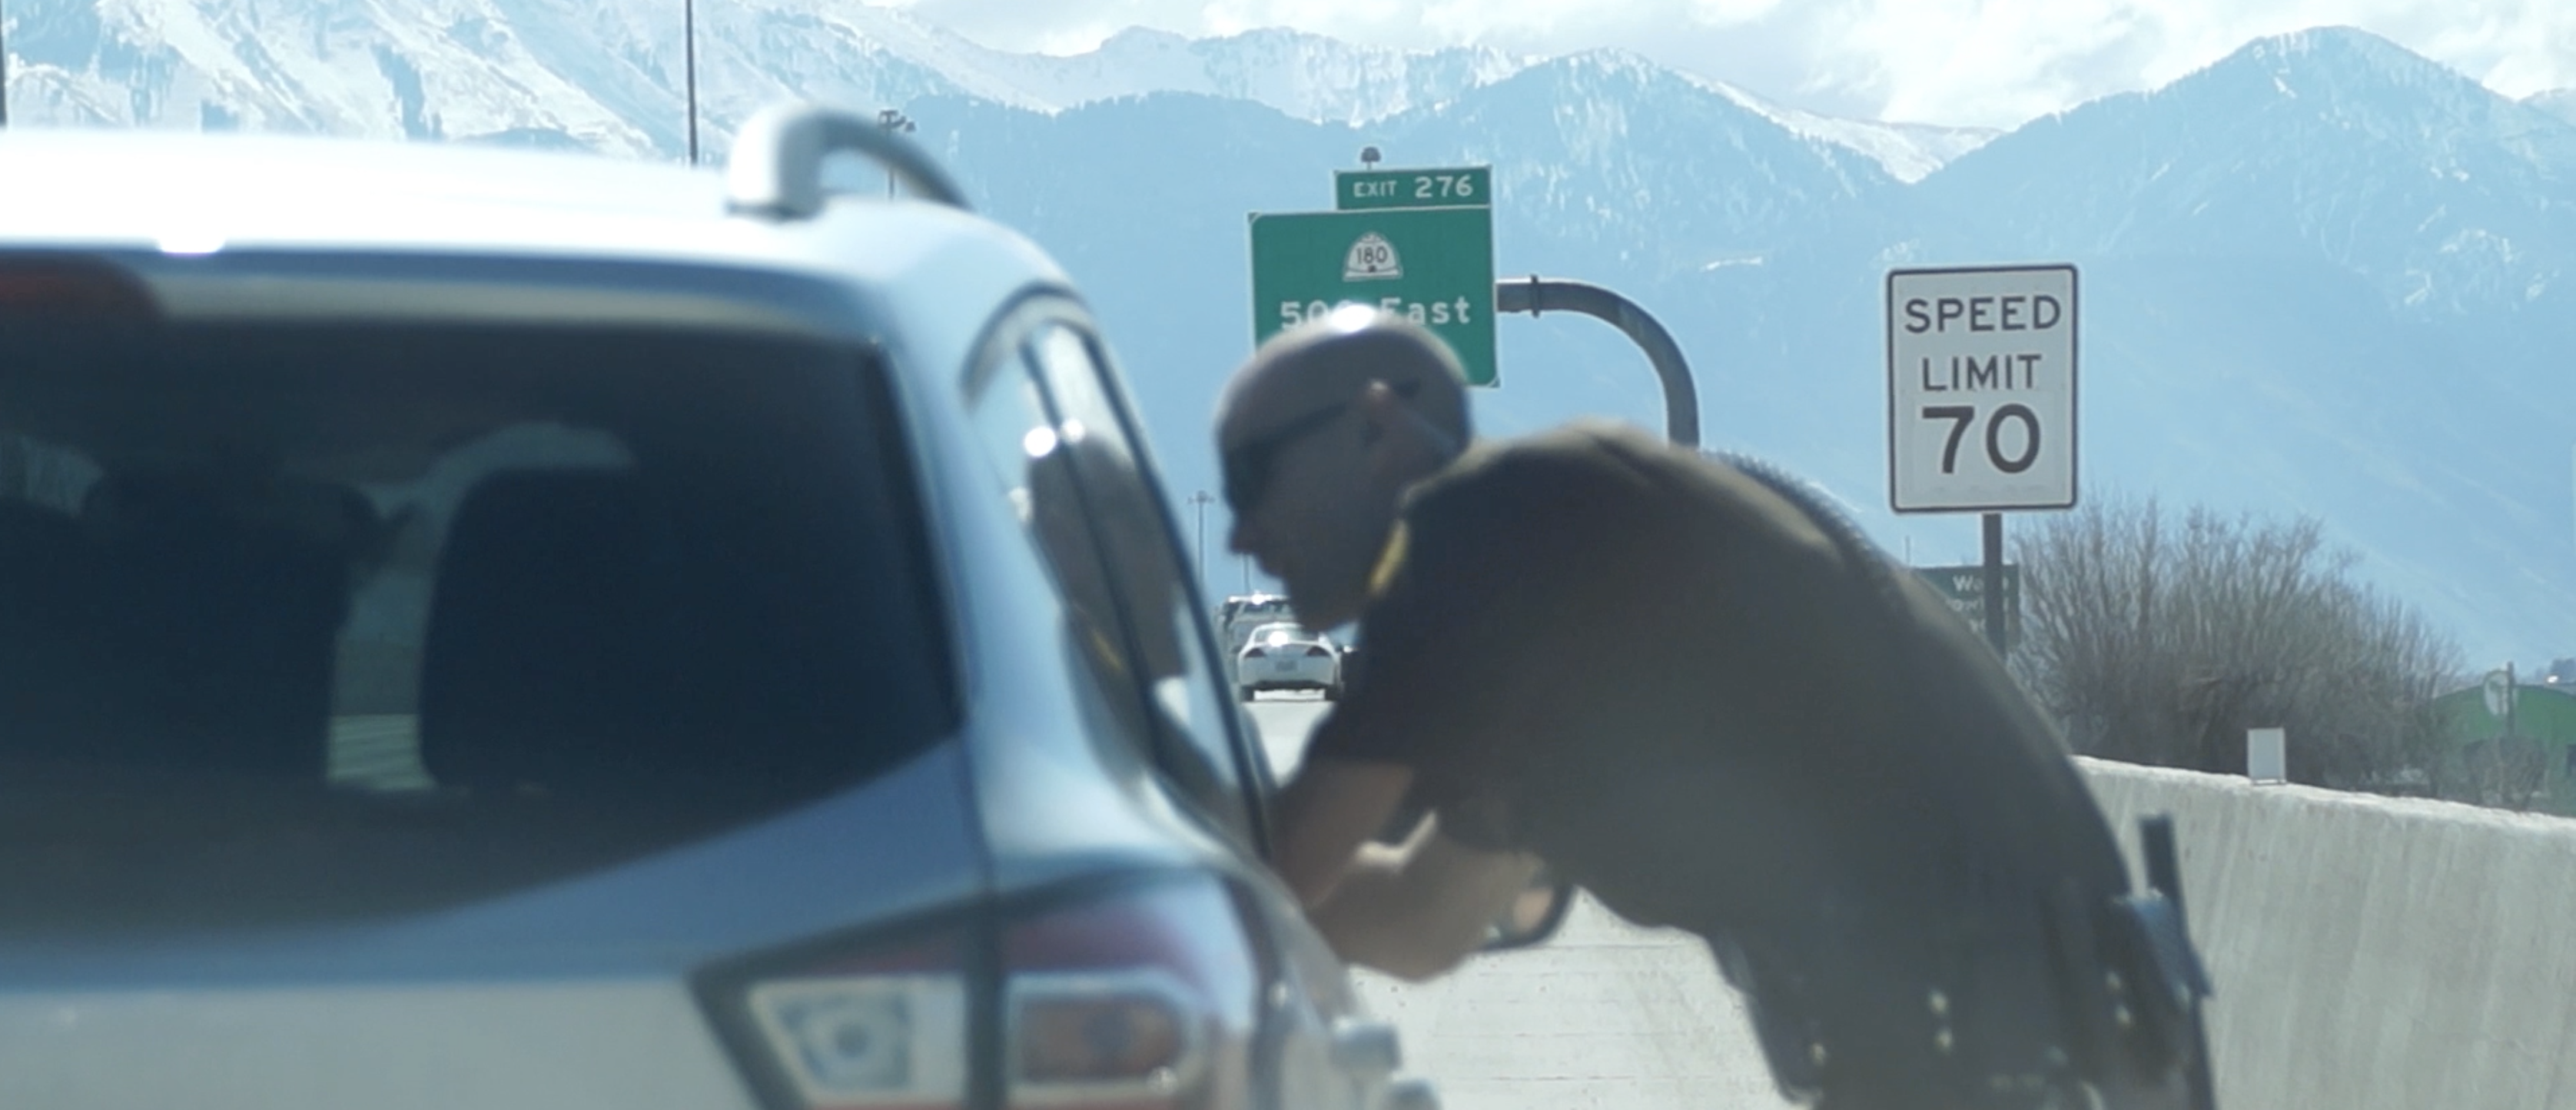 UHP trooper conducts a traffic stop for speeding.